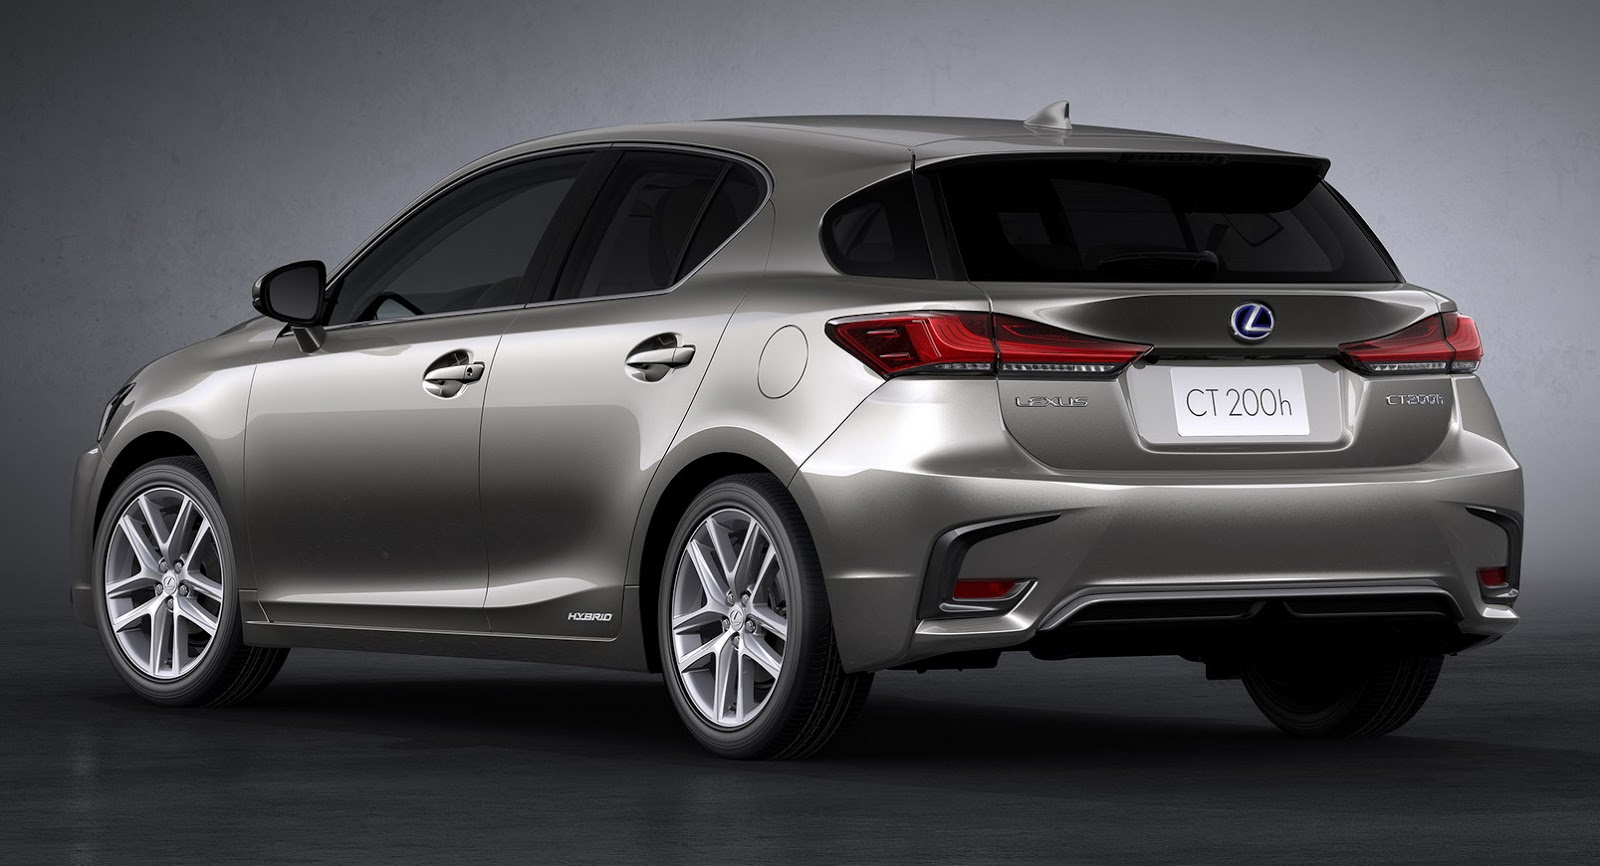 lexus gives 2018 ct 200h a final facelift and drops it from u.s.